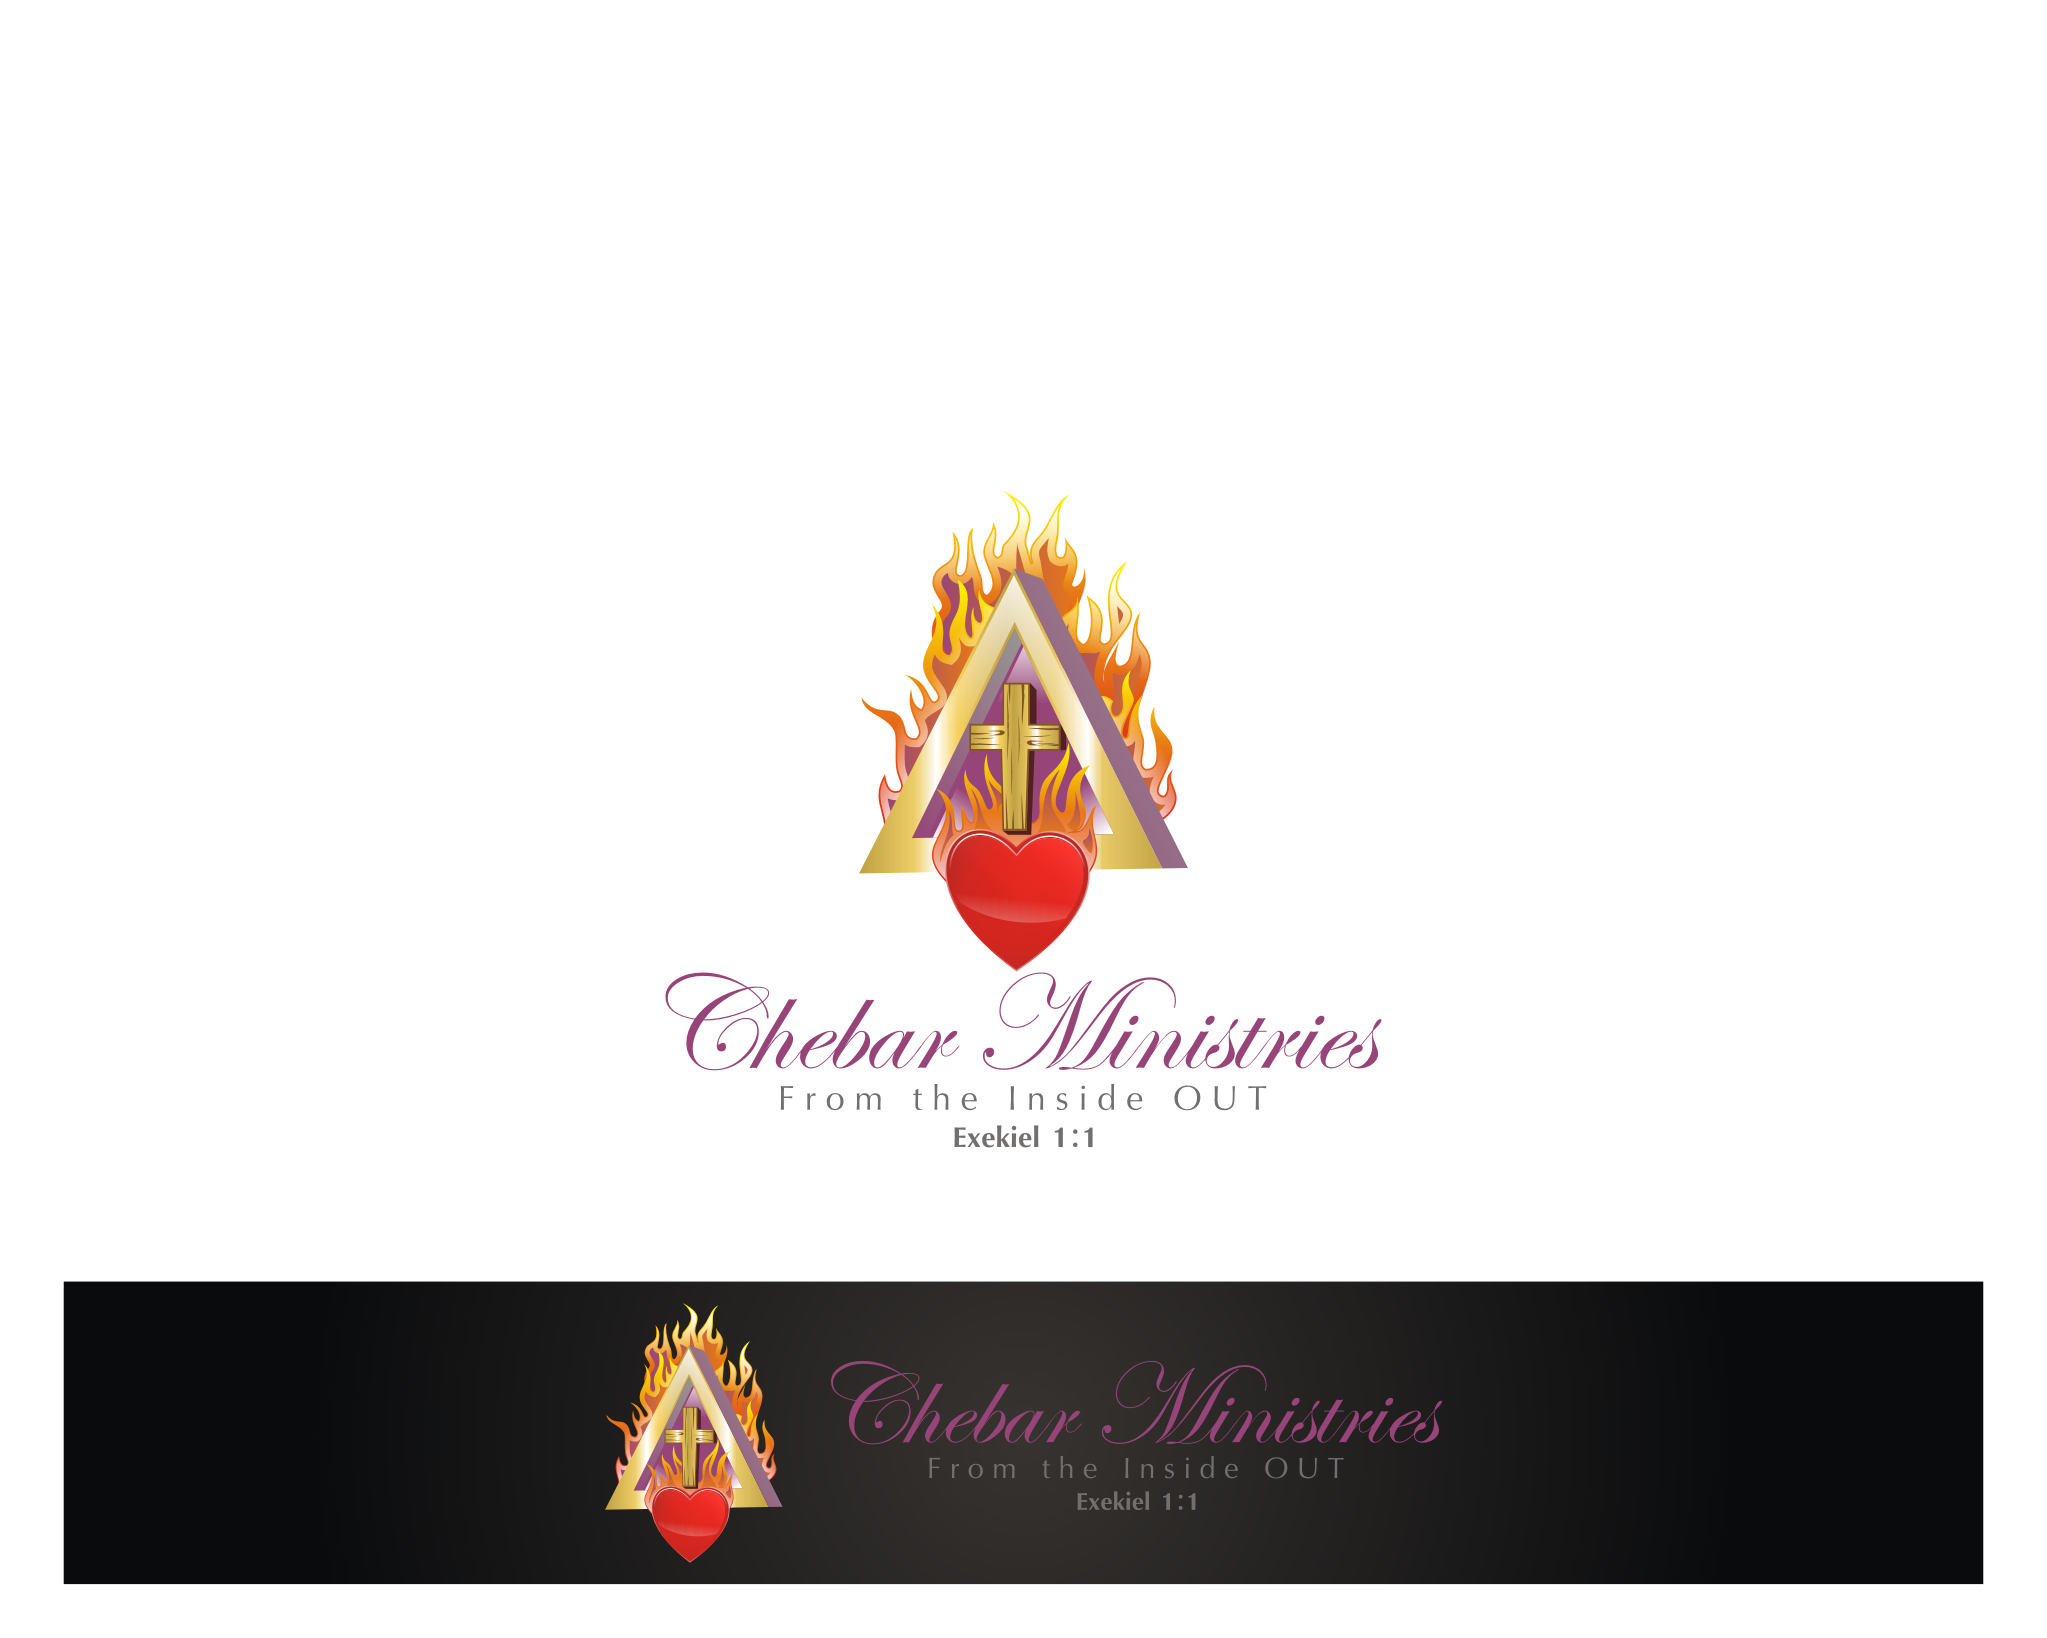 Create the next logo for Chebar Ministries...From the Inside OUT